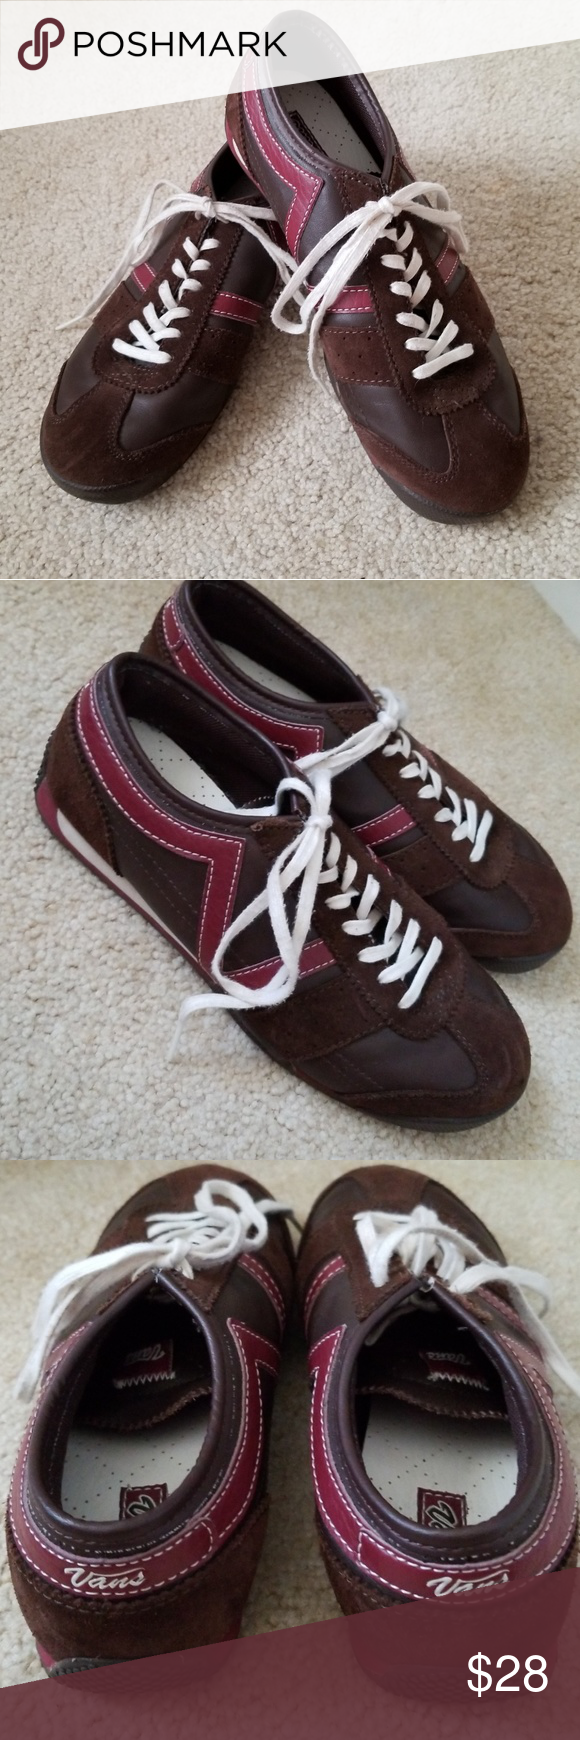 Vans Dabney Brown Suede Shoes Sneakers